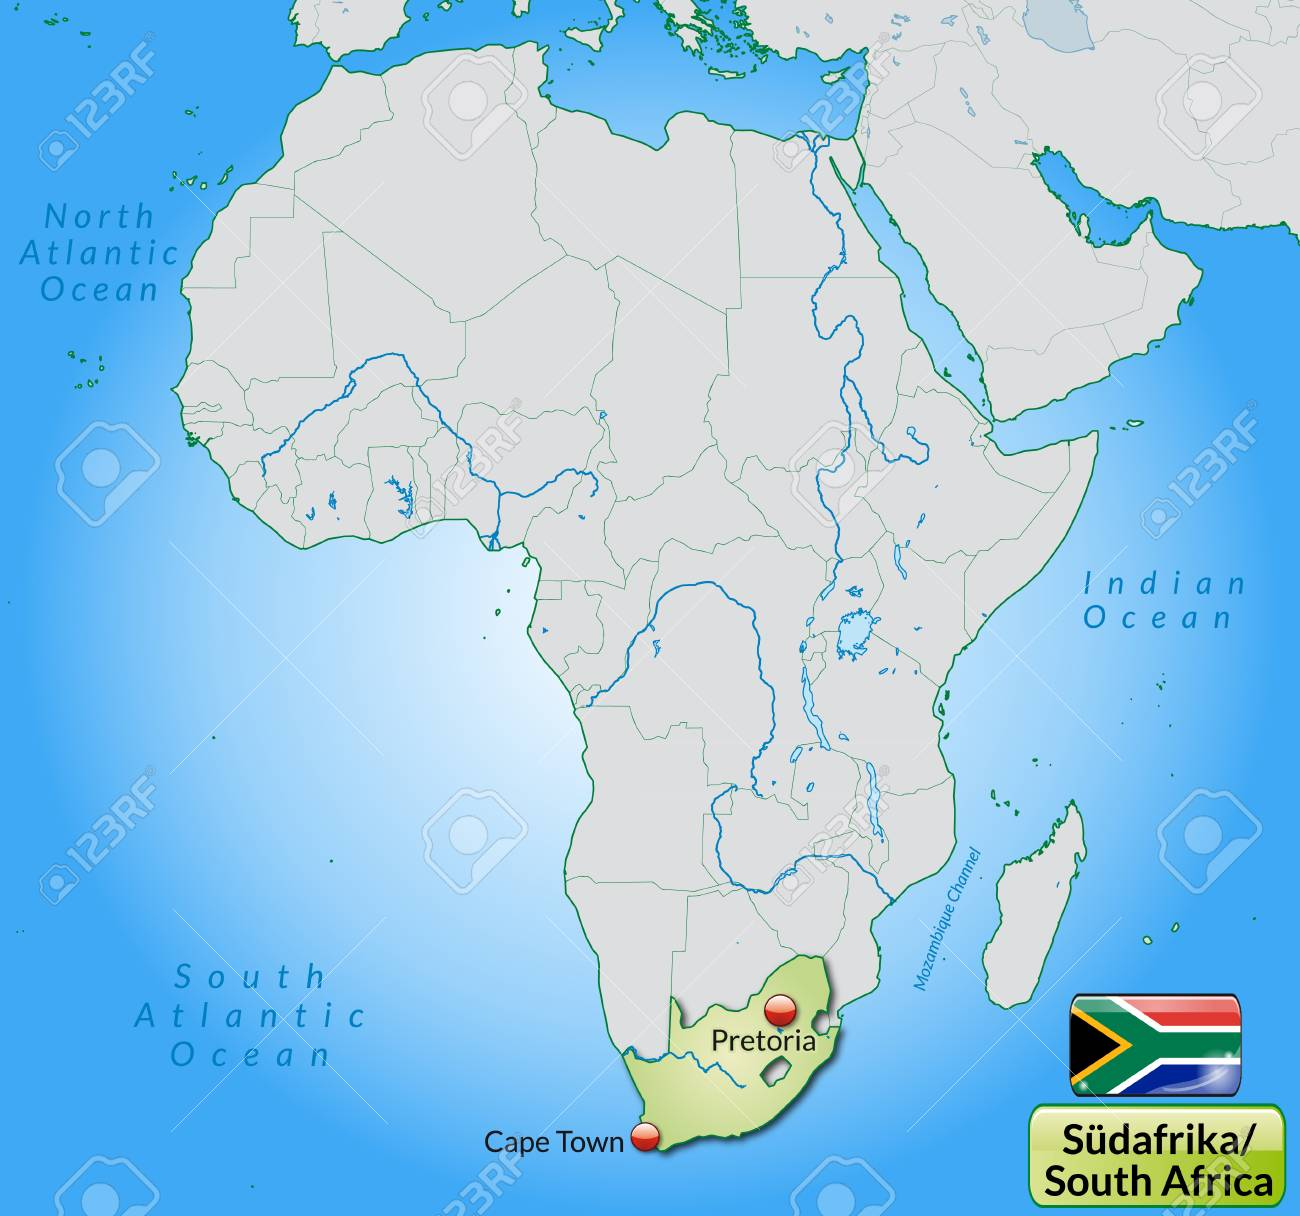 Map Of South Africa With Main Cities In Pastel Green Royalty Free - Map of south africa with cities